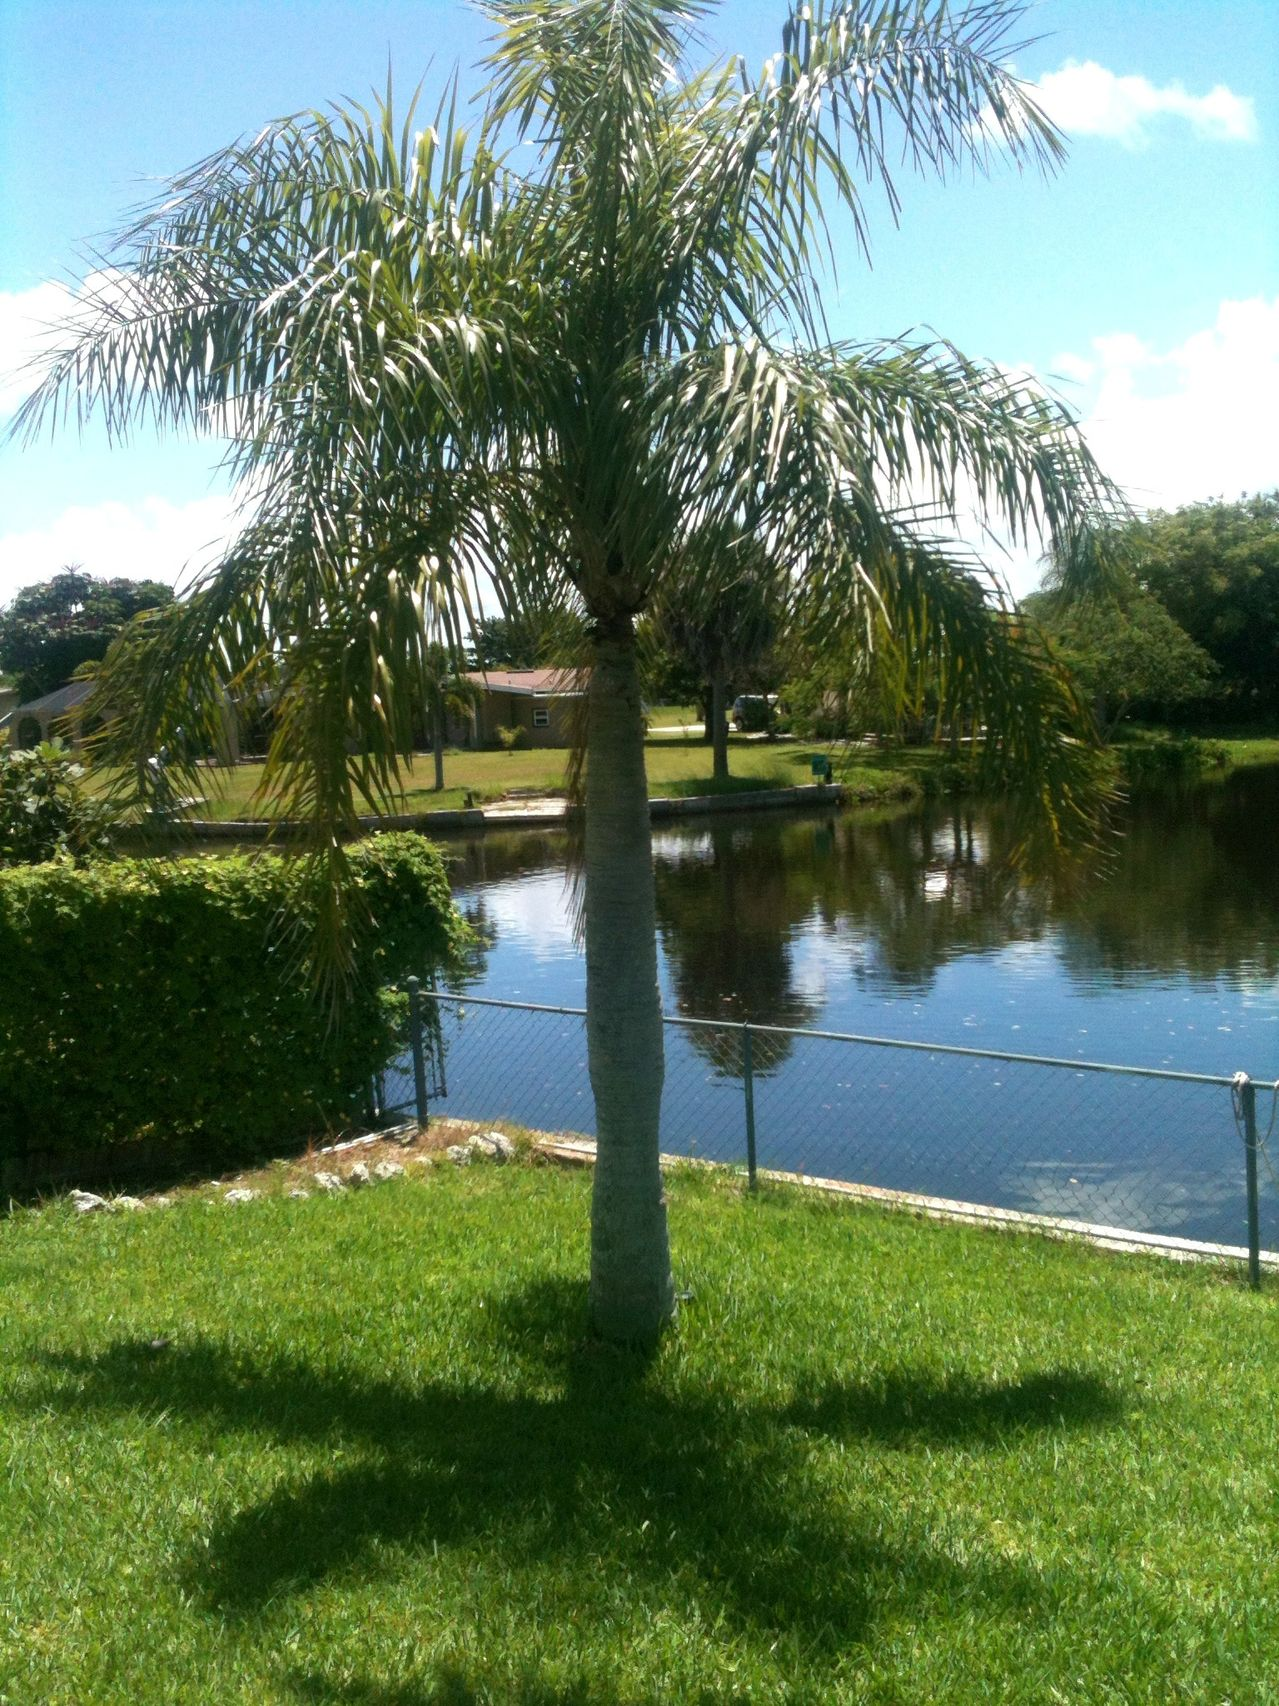 Home Depot Palm Trees Palm Tree Problems Home Depot Buy Professionals Punta Gorda